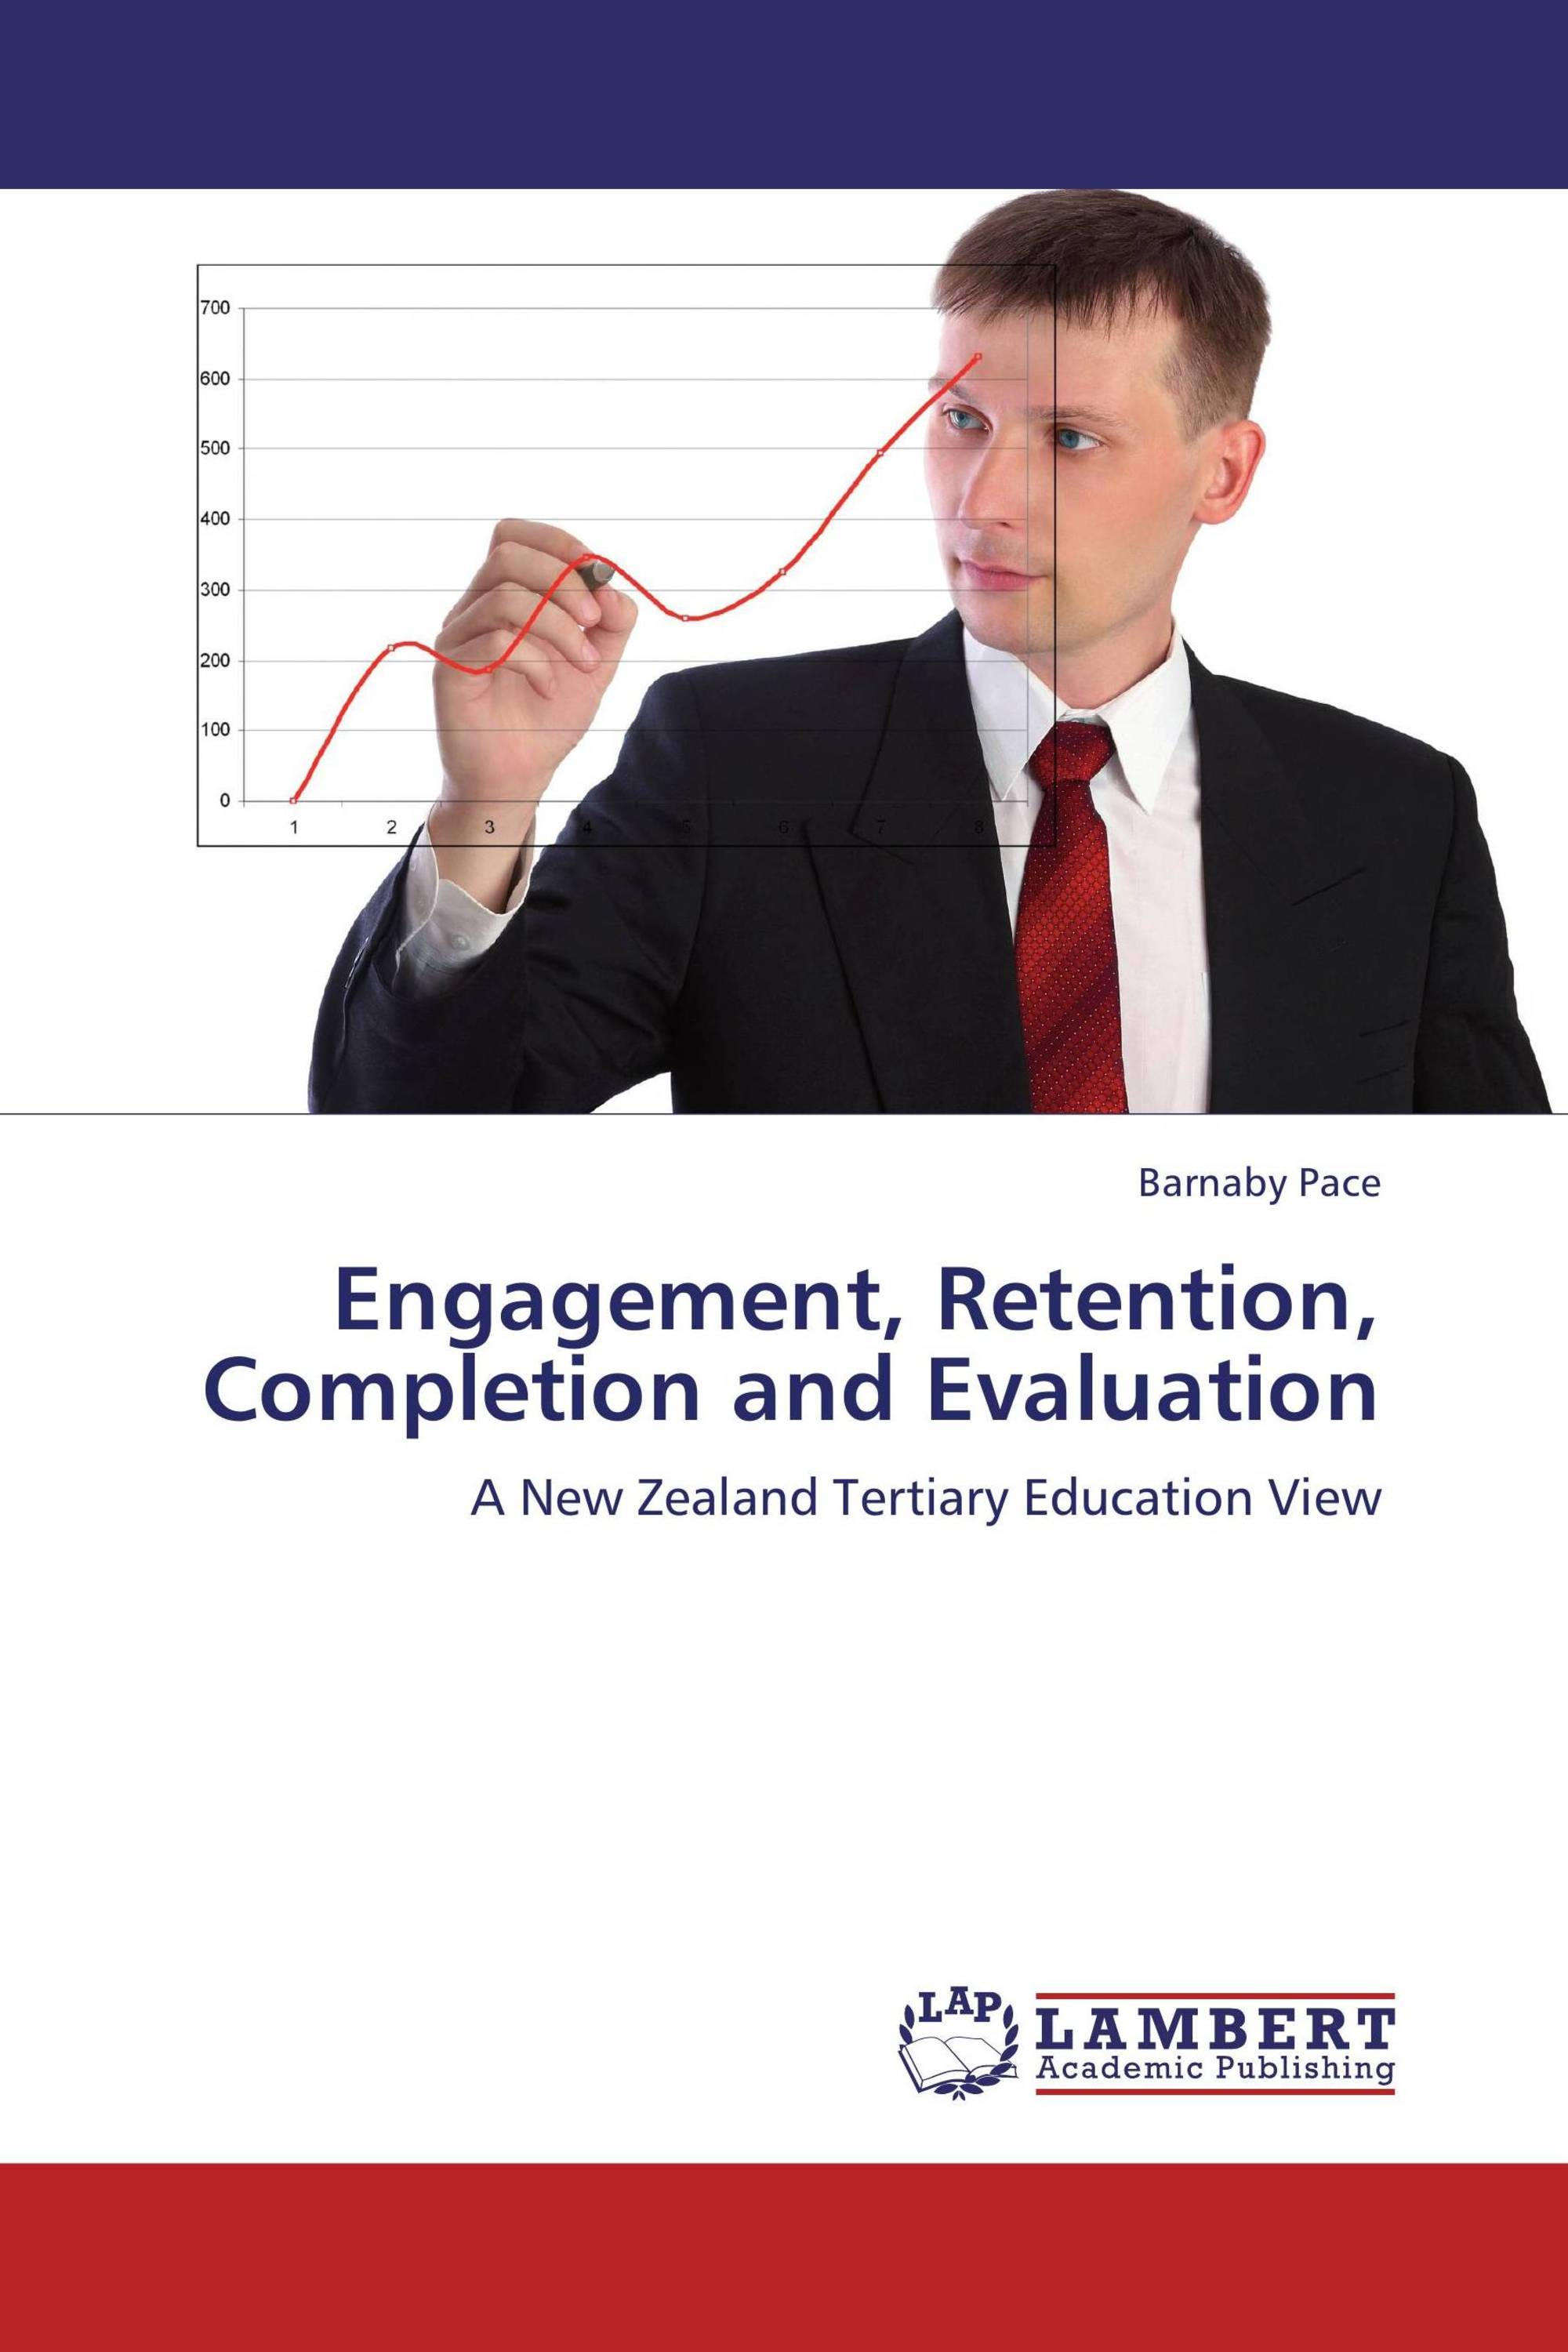 Engagement, Retention, Completion and Evaluation